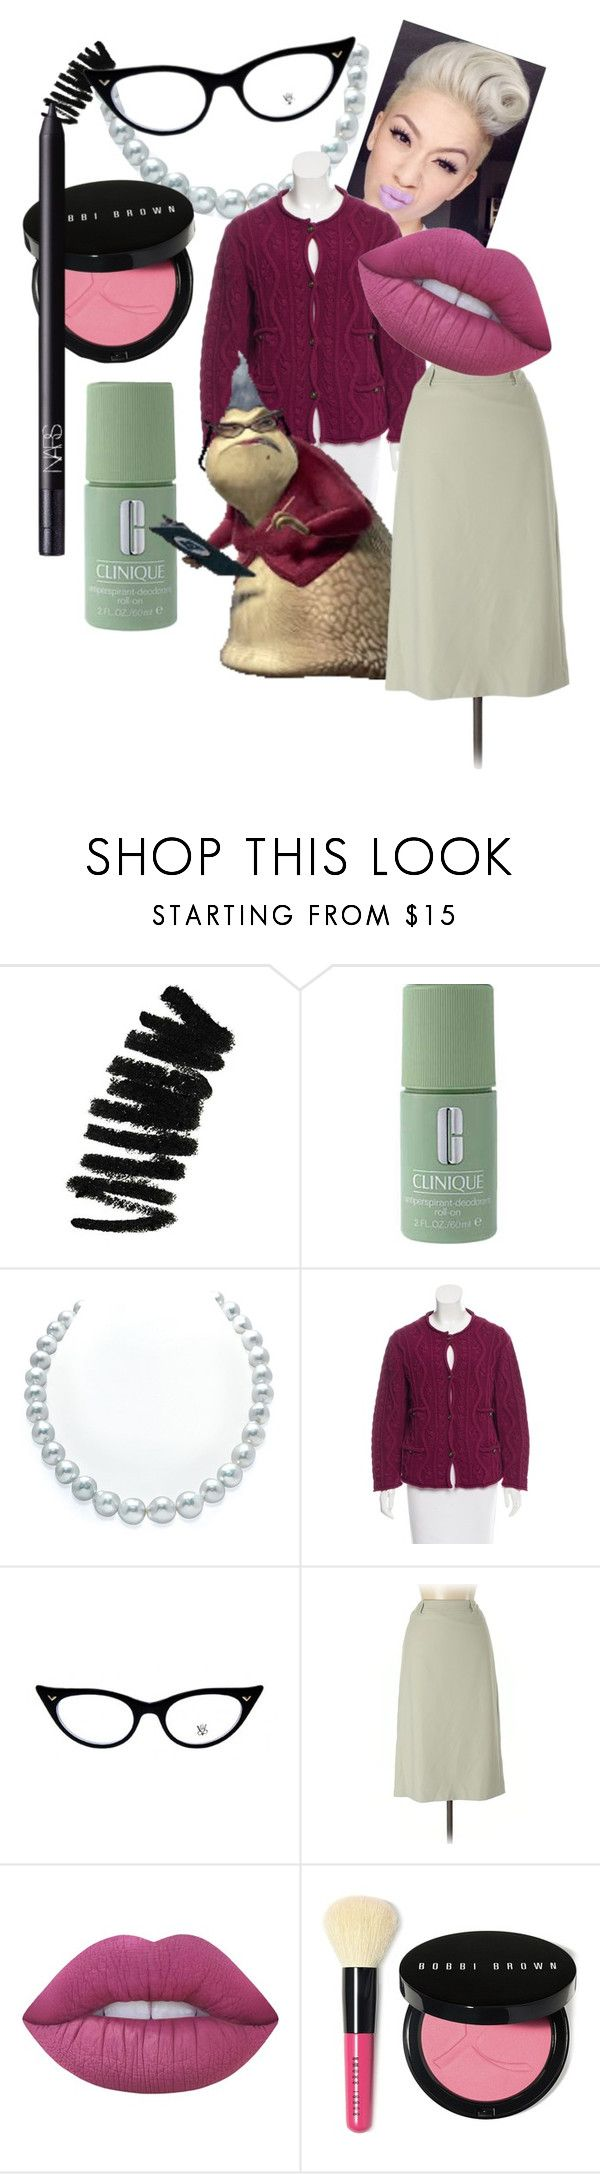 """Monster's inc. ""Rose"""" by chevakee ❤ liked on Polyvore featuring Bobbi Brown Cosmetics, Clinique, Chanel, INC International Concepts, Lime Crime and NARS Cosmetics"